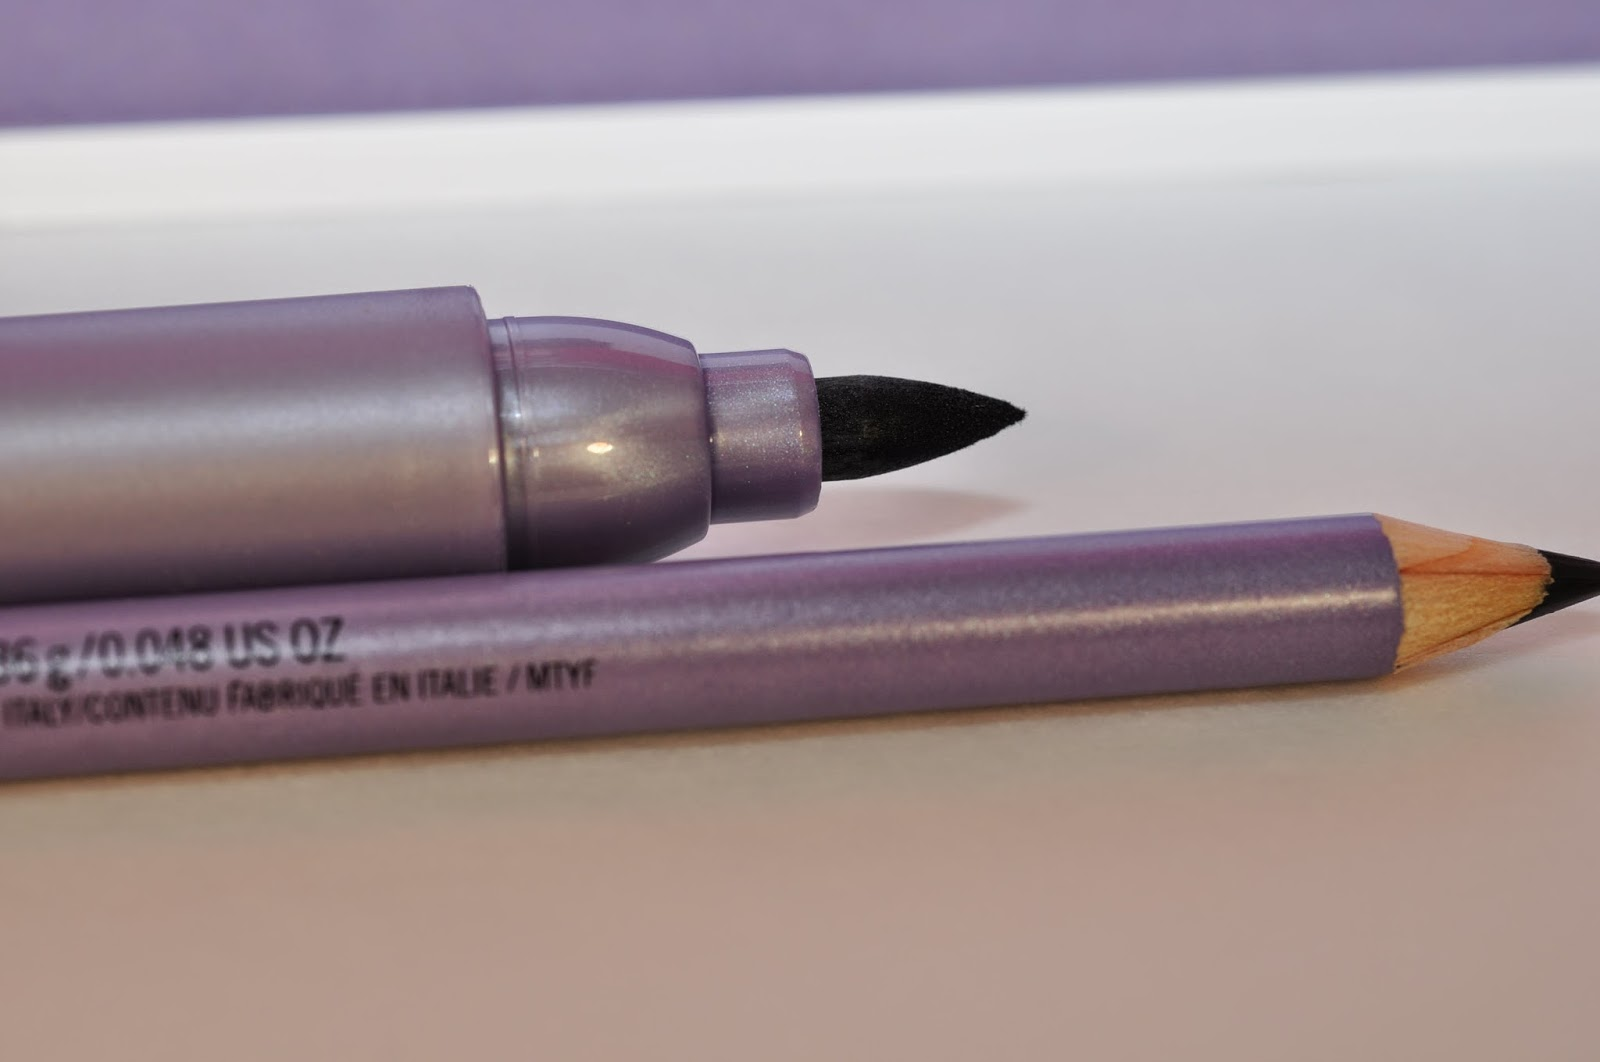 MAC Jumbo Penultimate Liner in Rapid Black, MAC Eye Kohl in Smolder